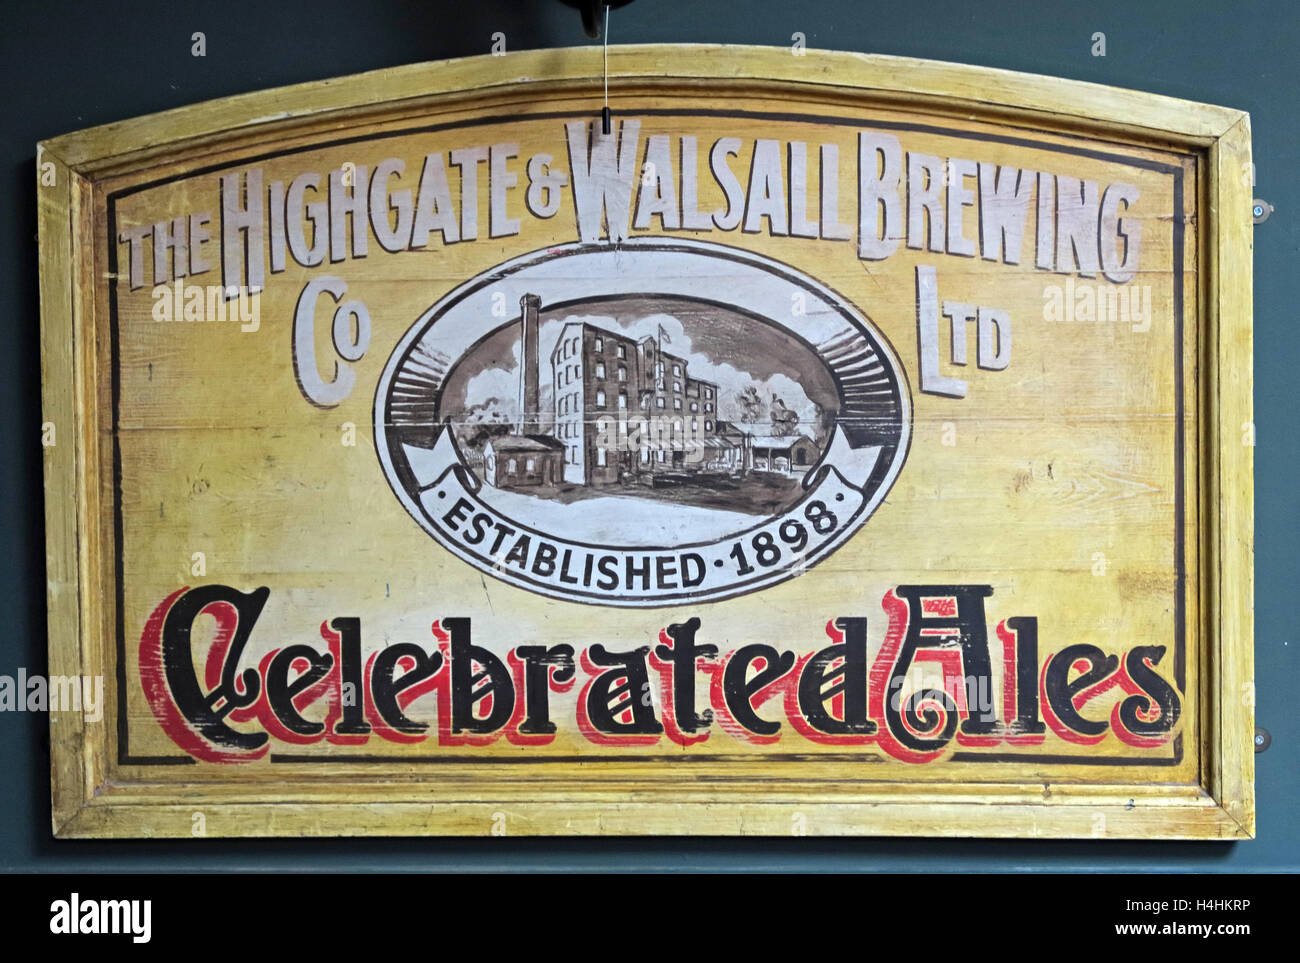 Highgate & Walsall Brewing Co Ltd,Celebrated Ales,West Midlands,England,UK - Stock Image